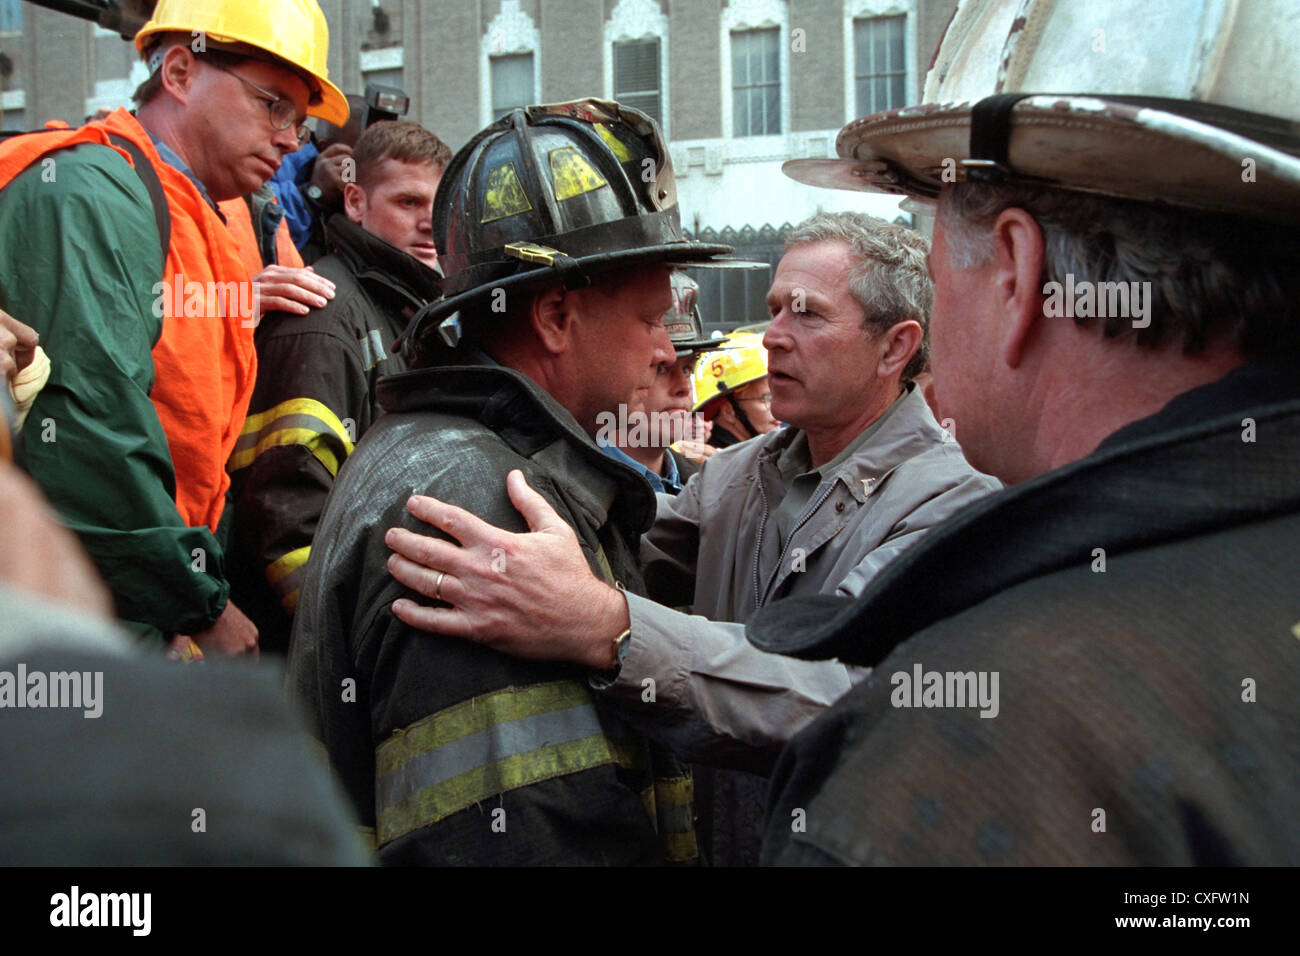 US President George W. Bush embraces a rescue workers at the destroyed World Trade Center September 14, 2001 in - Stock Image